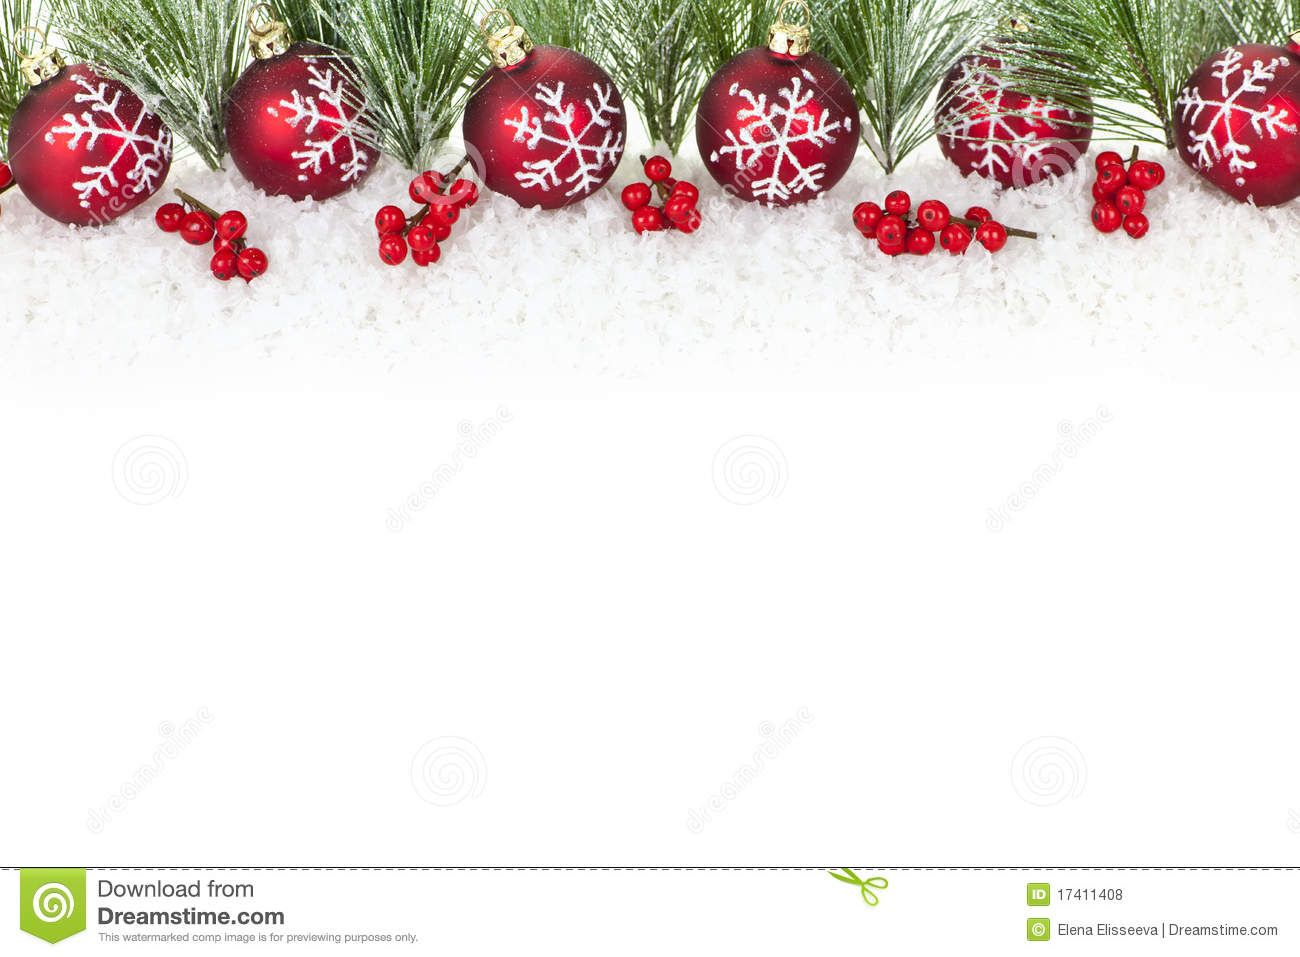 Christmas Border With Red Ornaments  Download From Over 28 Million High  Quality Stock Photos,